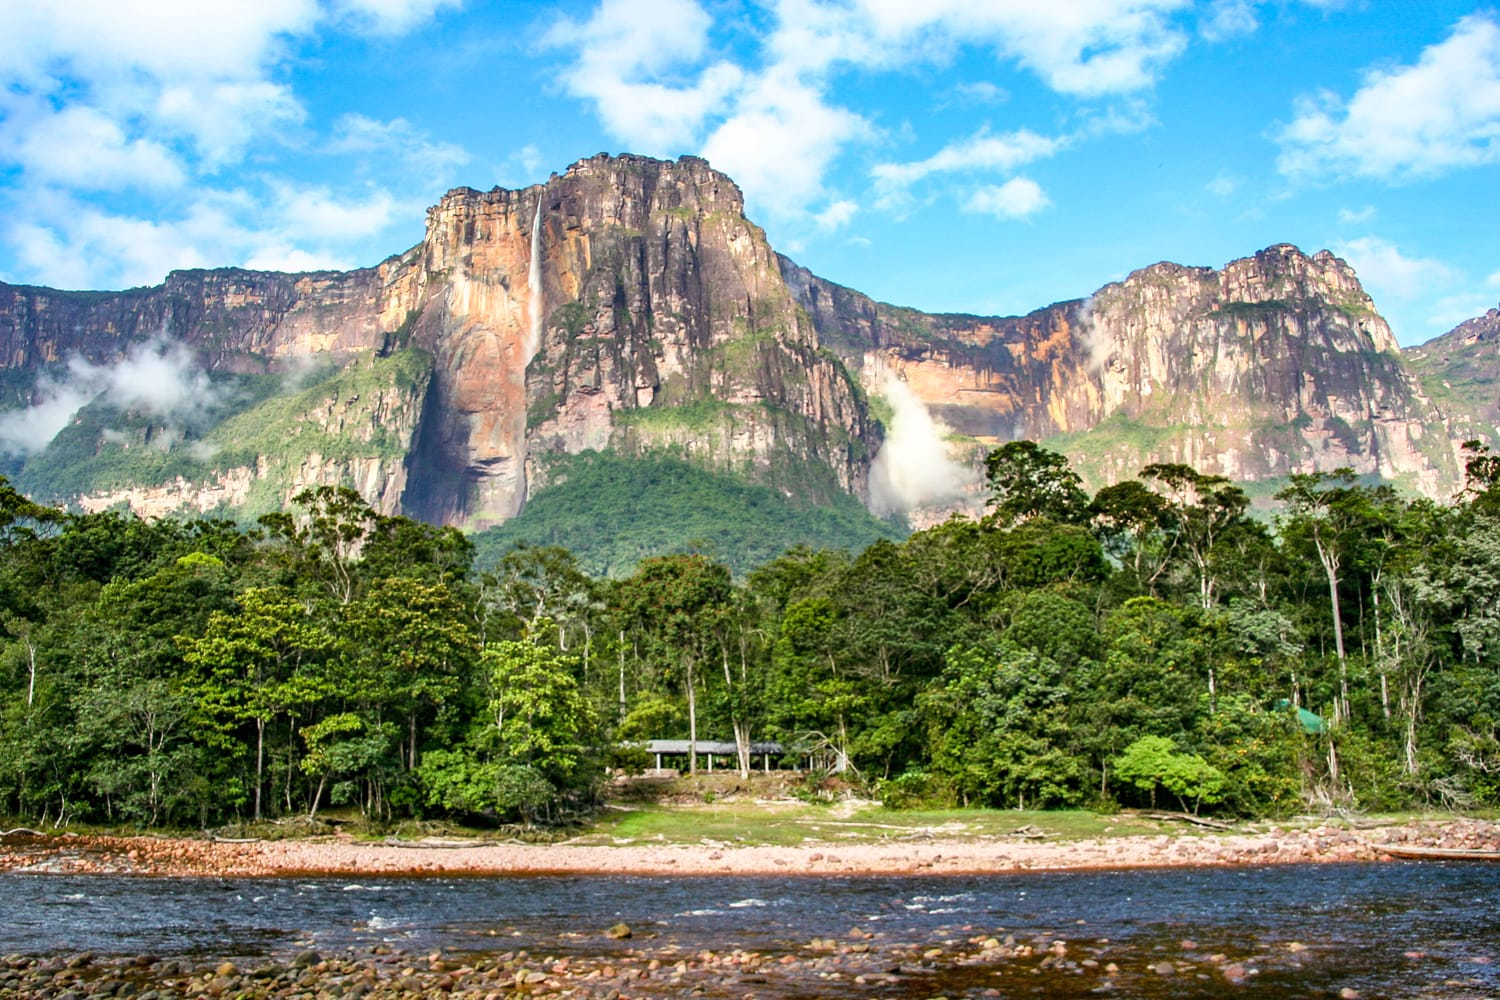 Angel Falls at Canaima National Park, Venezuela